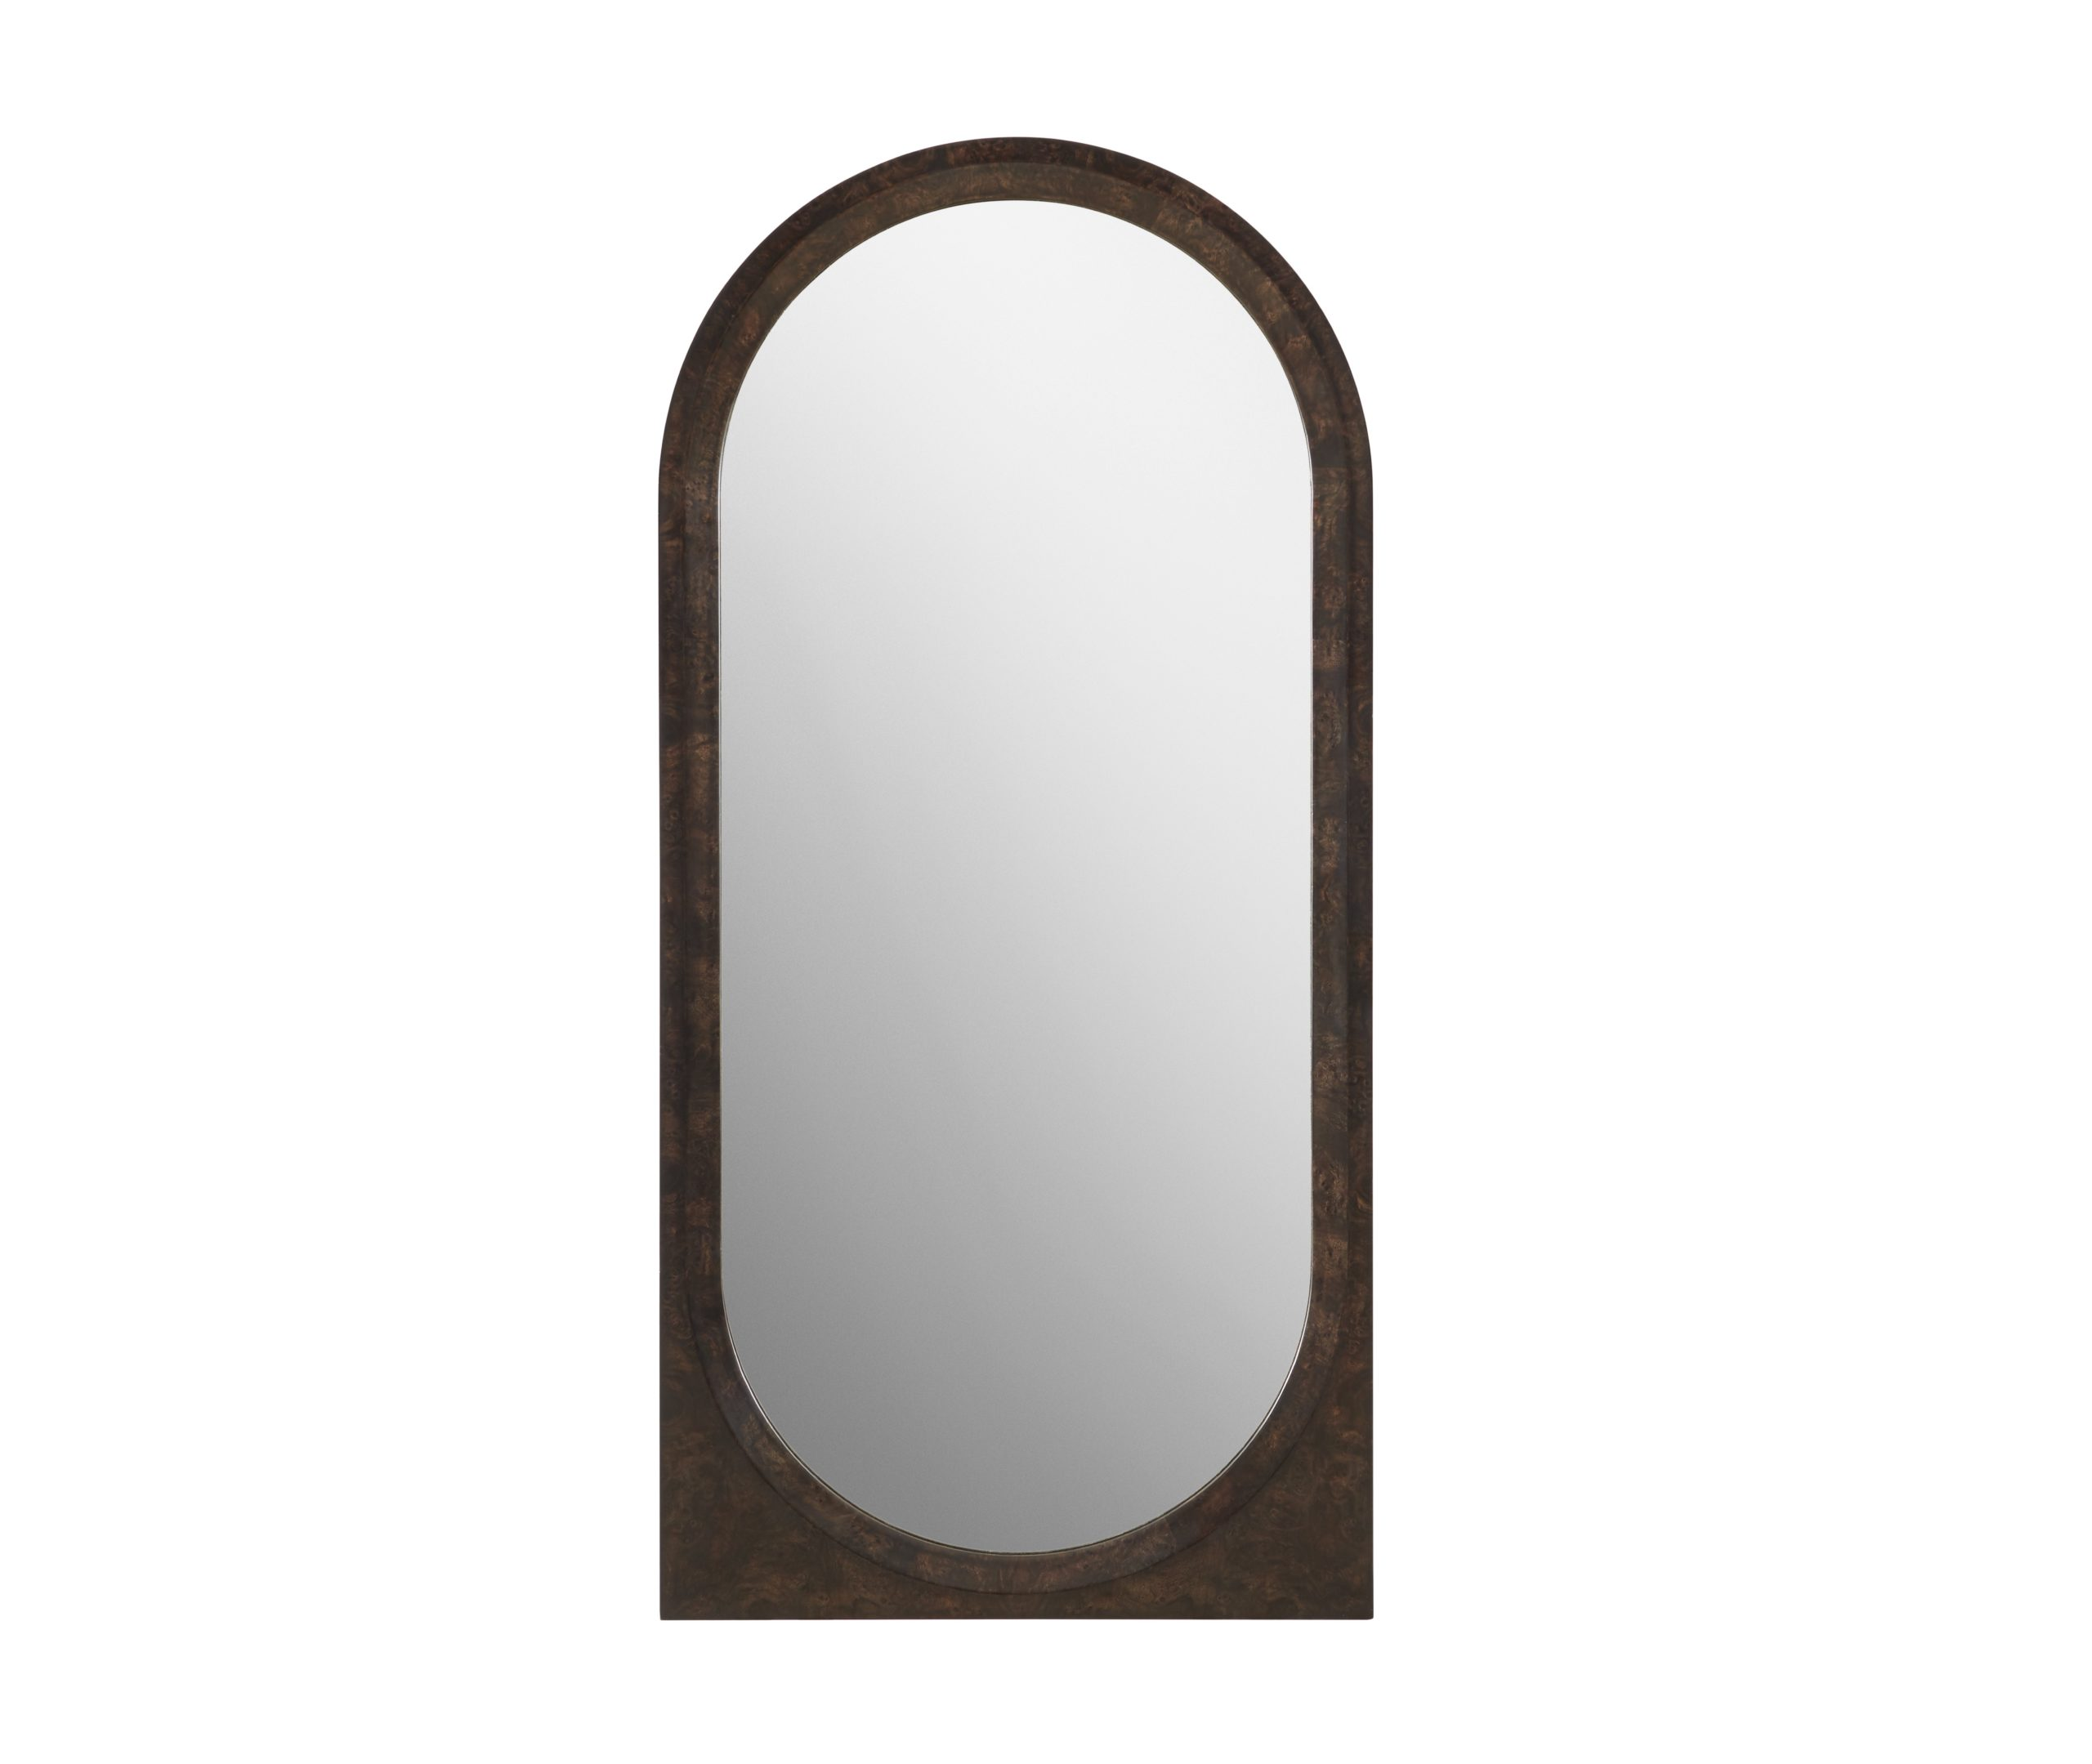 Baker_products_ellipse_mirror_WNWN_BAA3013_FRONT-scaled-1